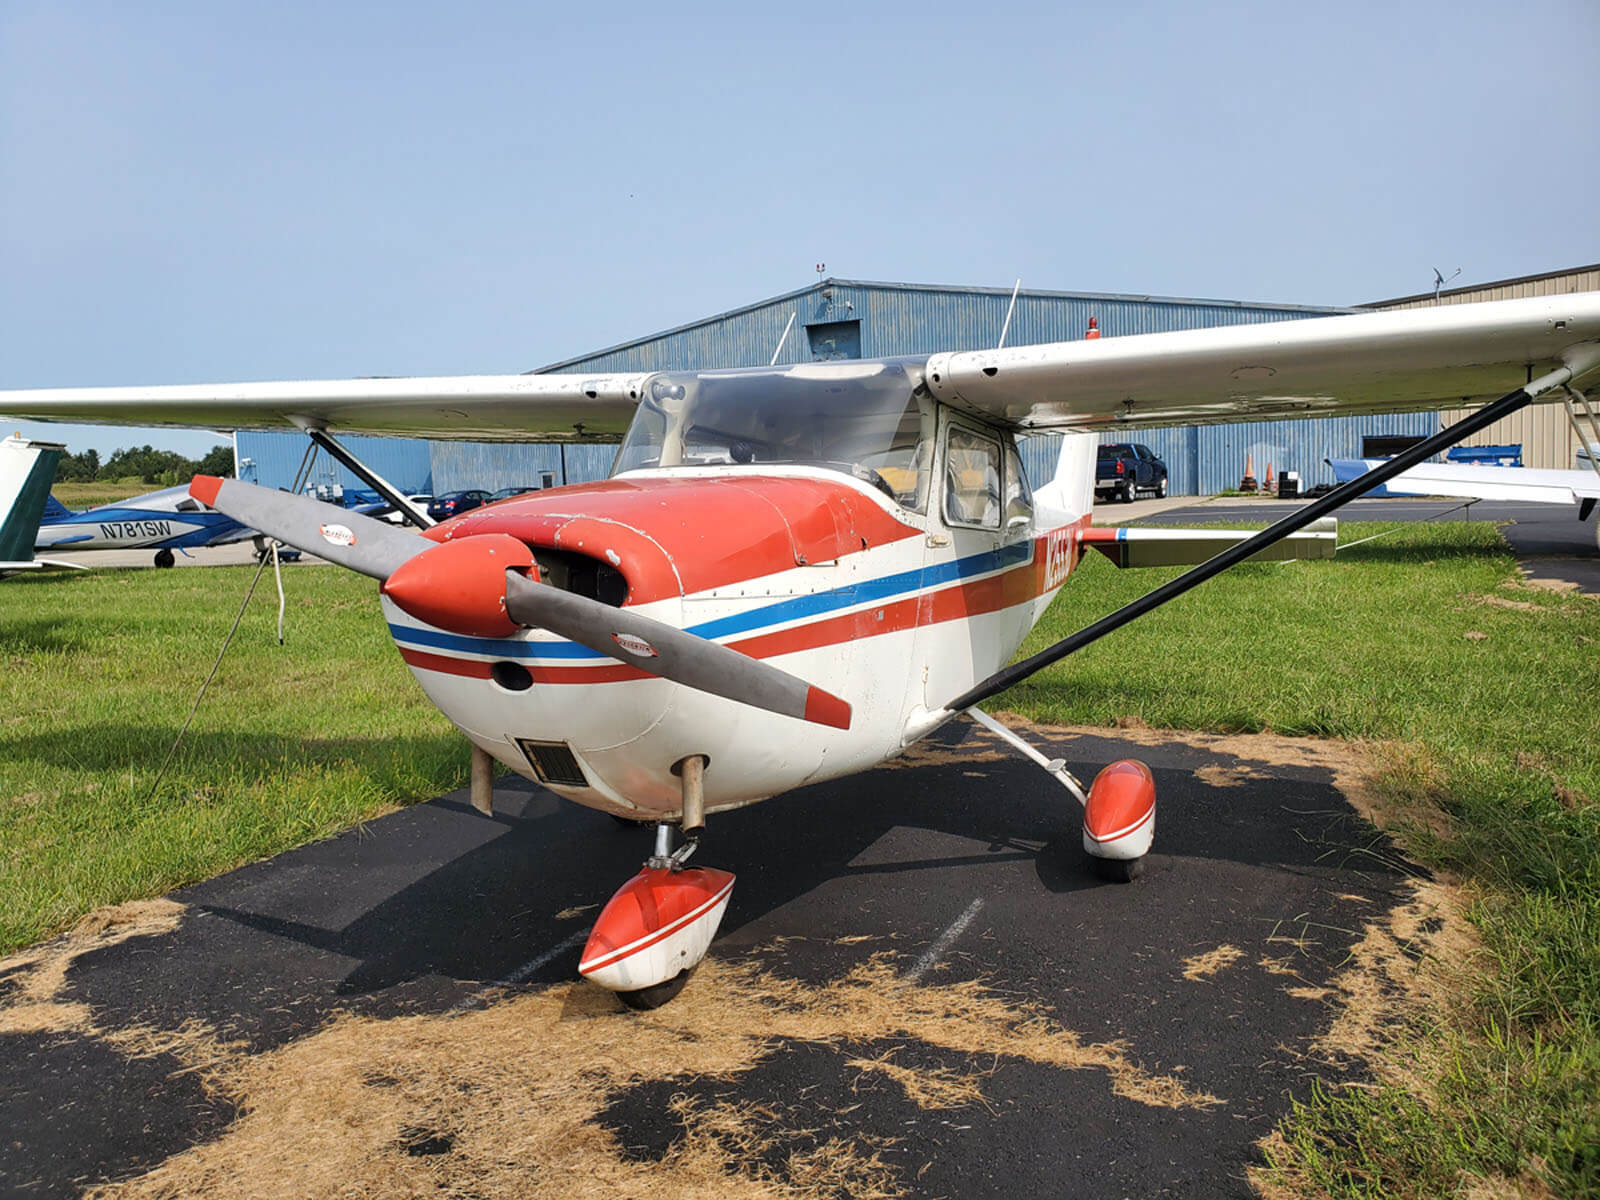 1963 Cessna 172 FOR SALE at Princeton Airport ~ Contact Ken Nierenberg for details 609-731-4628